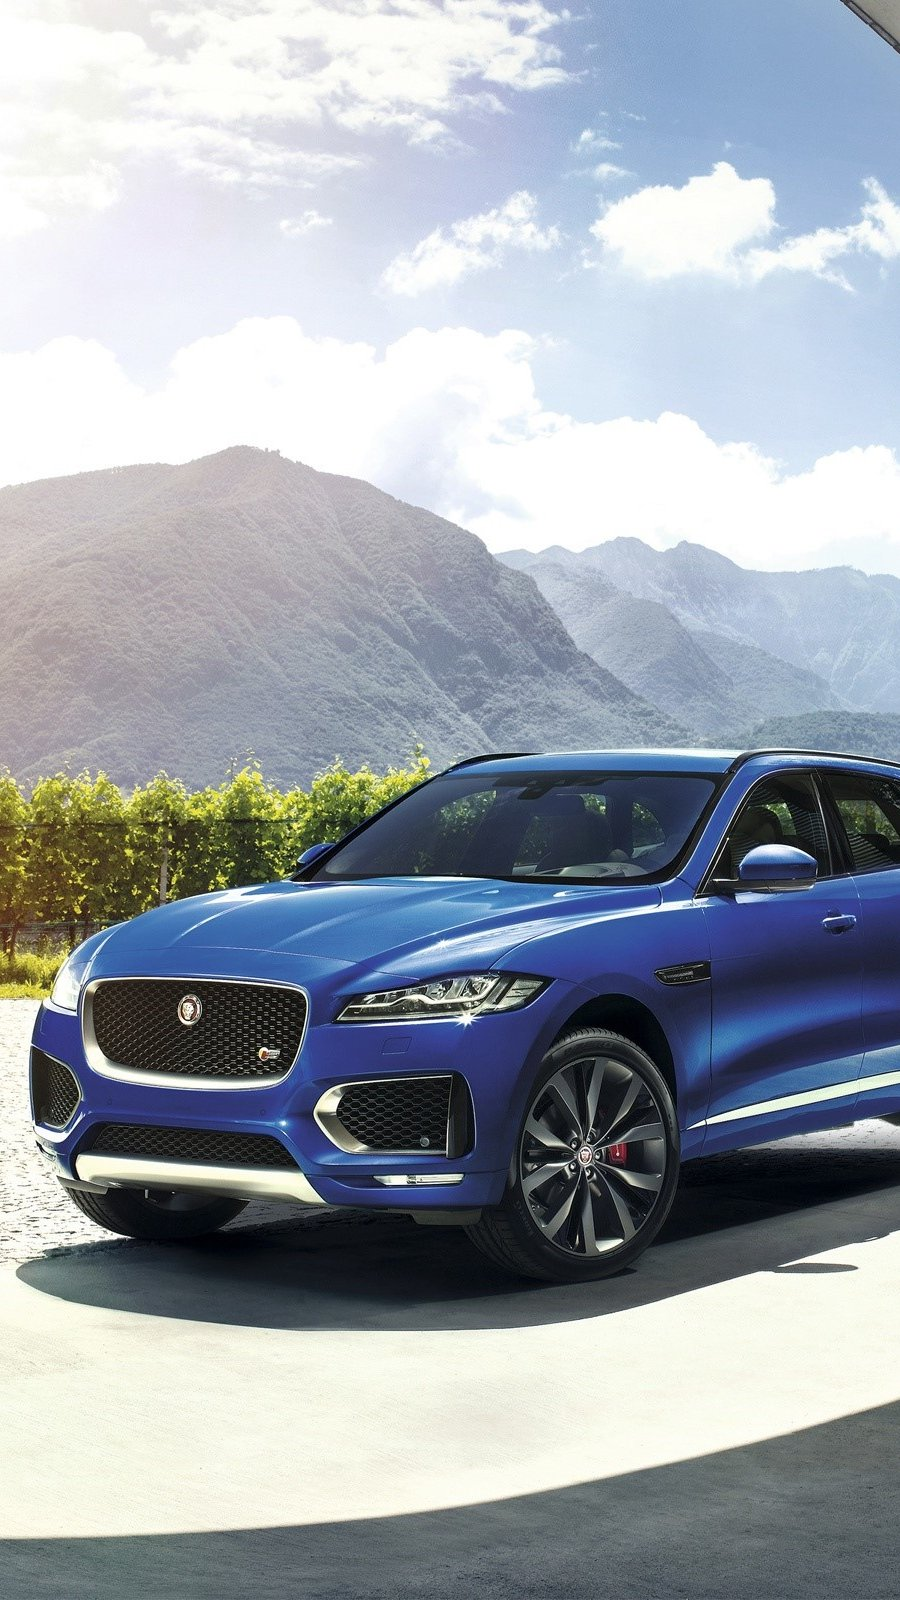 Wallpaper Jaguar F Pace Vertical